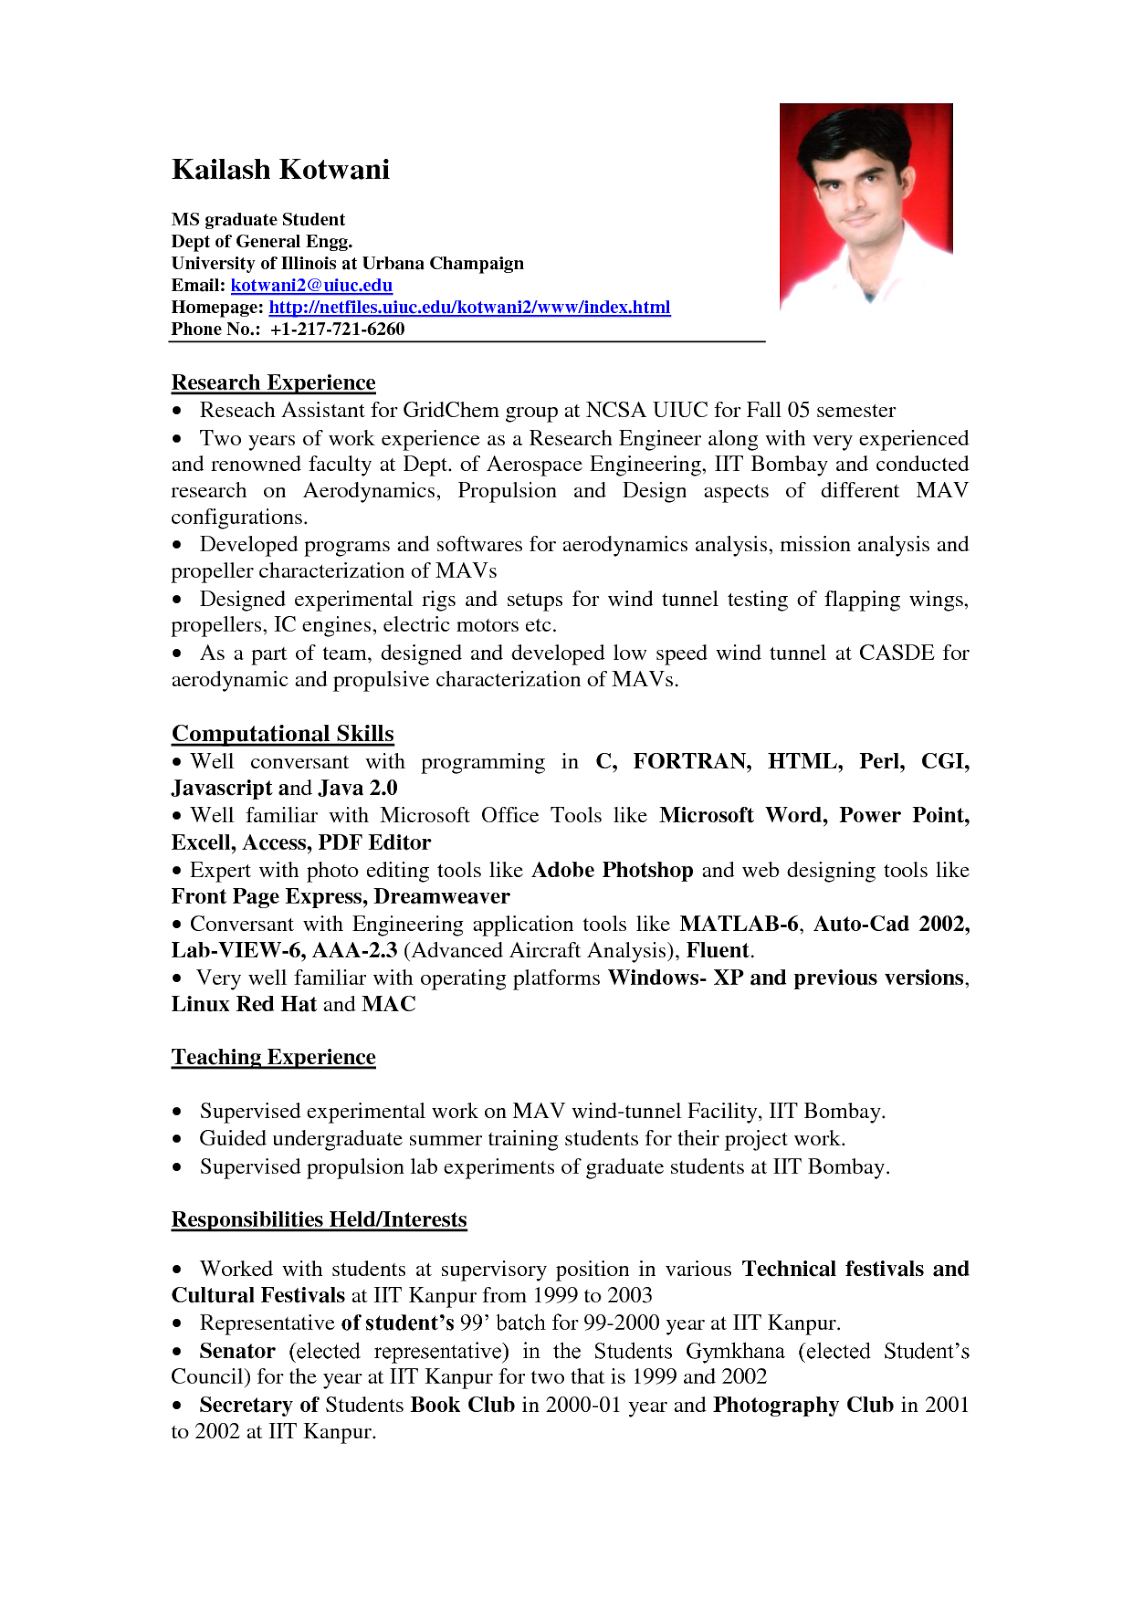 student resume format – Resume Templates for Students in University